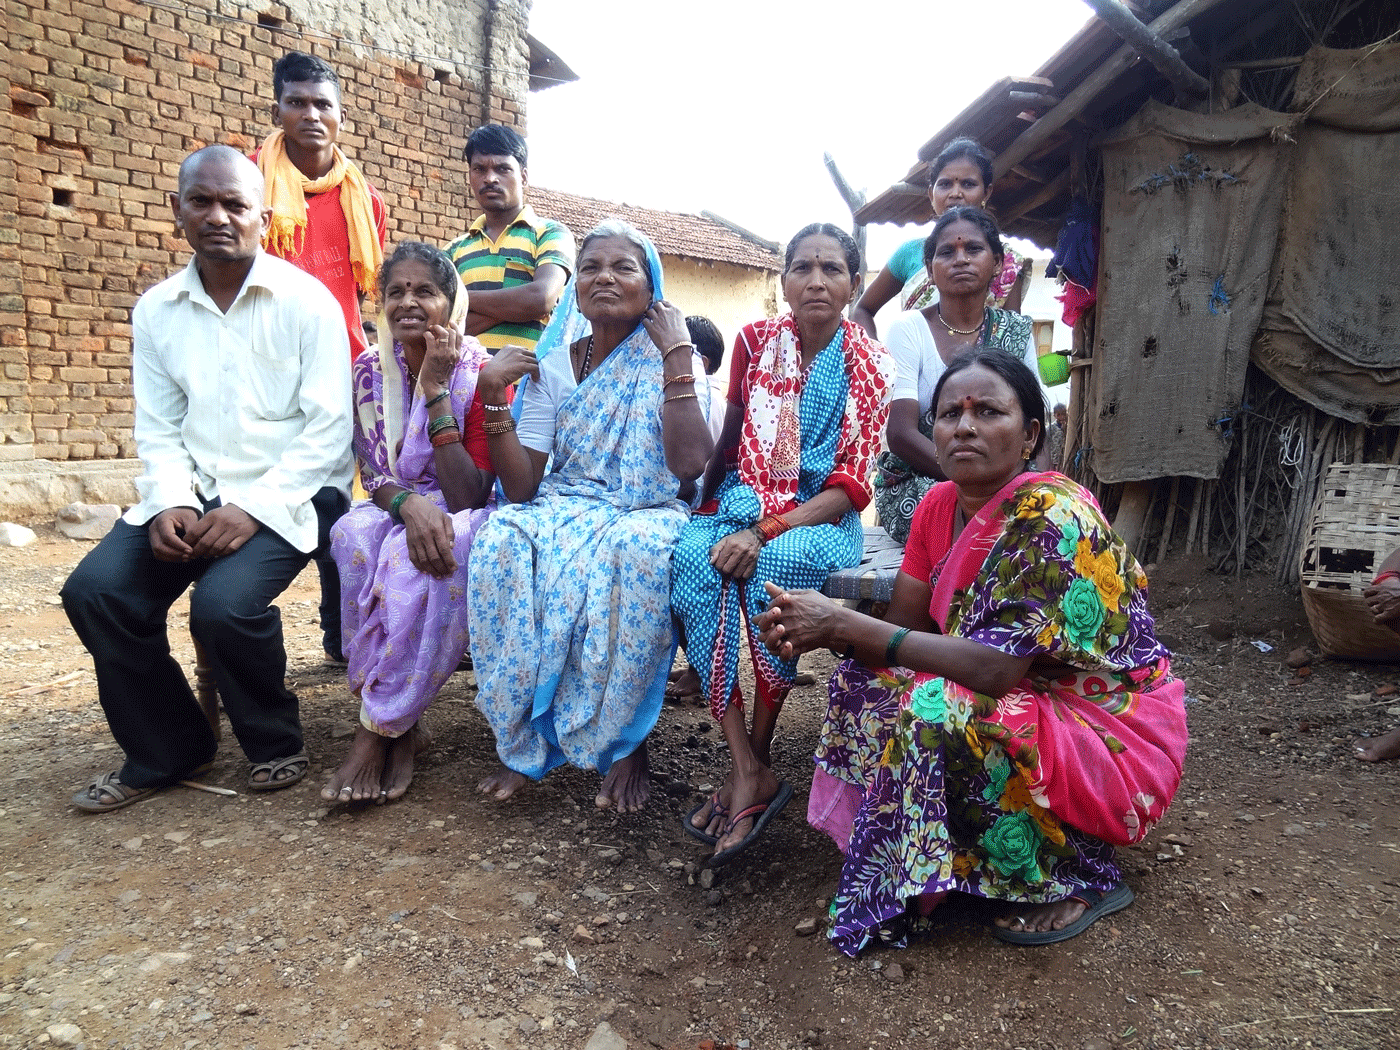 Ramabai Gedam (centre) in Murmadi, Chandrapur. Her husband Mahadev was the second victim of tiger attacks in two months in this village